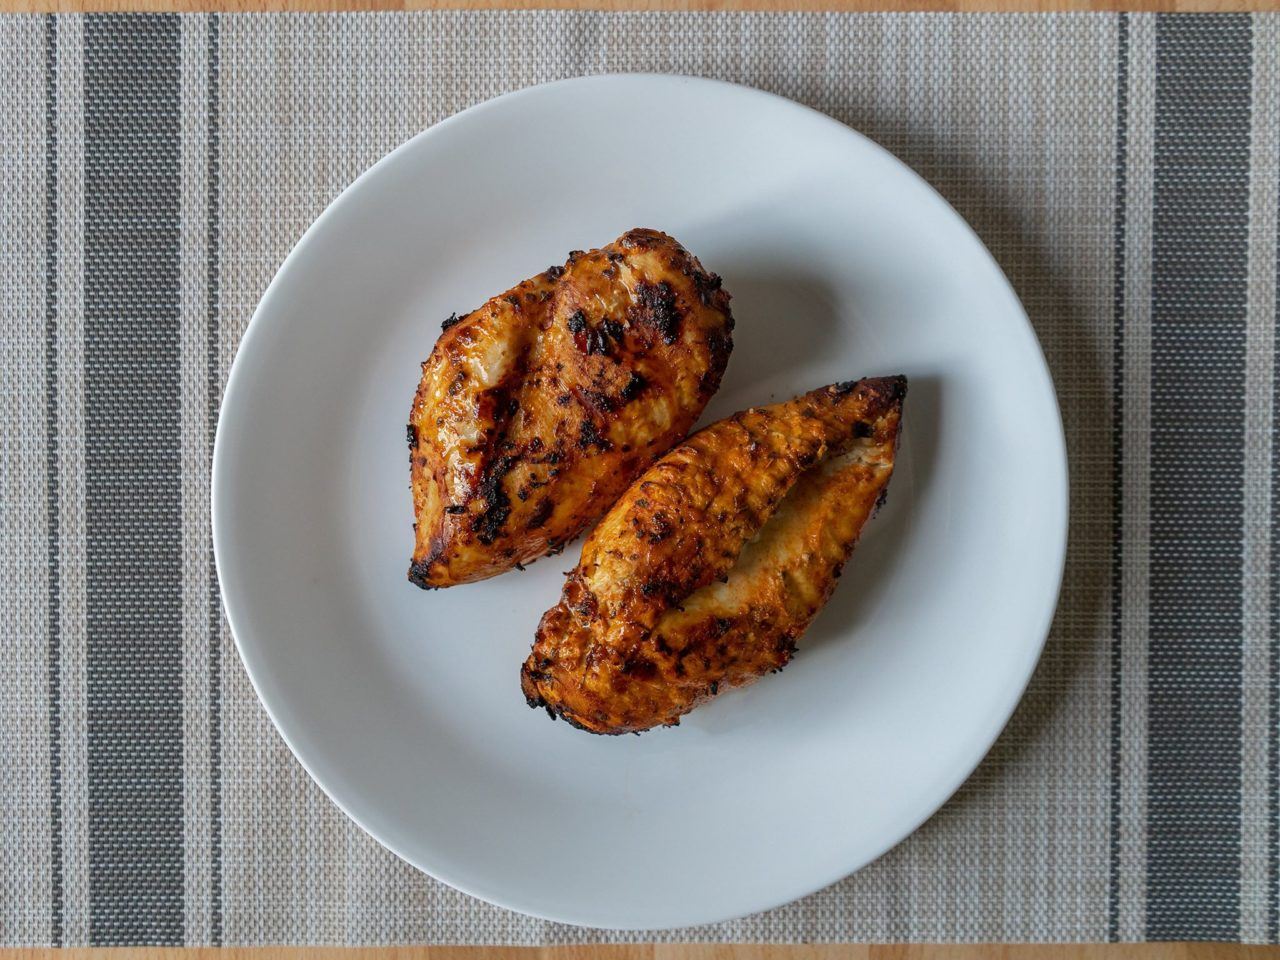 Mexian style grilled chicken out of the air fryer